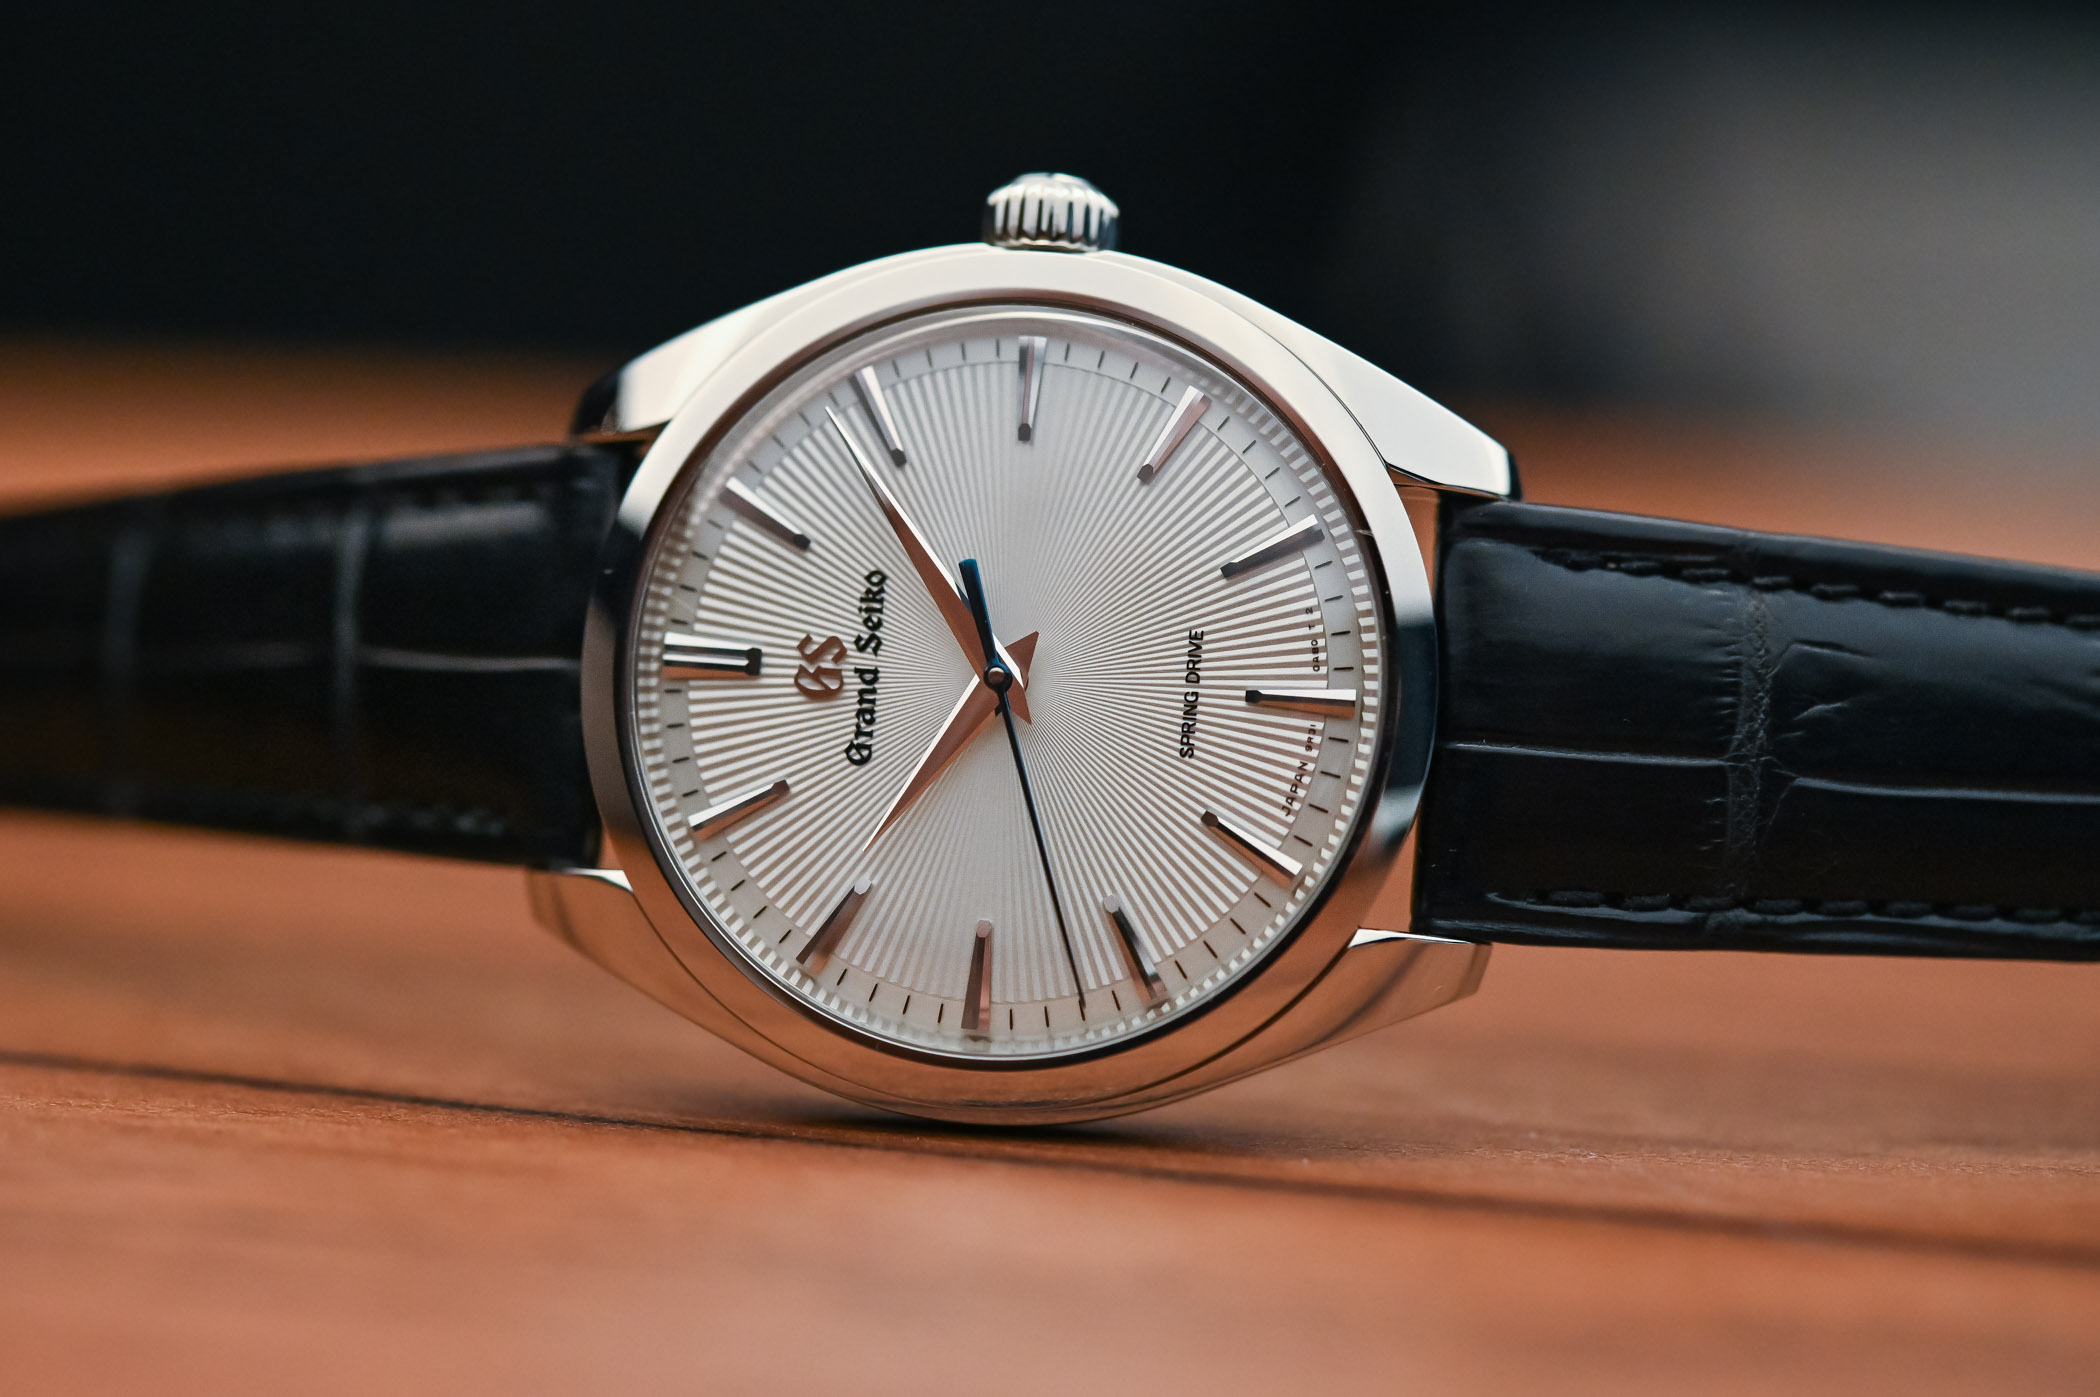 Grand Seiko Hand-Wound Spring Drive Collection - SBGY002 SBGY003 SBGZ002 SBGZ003 - 15